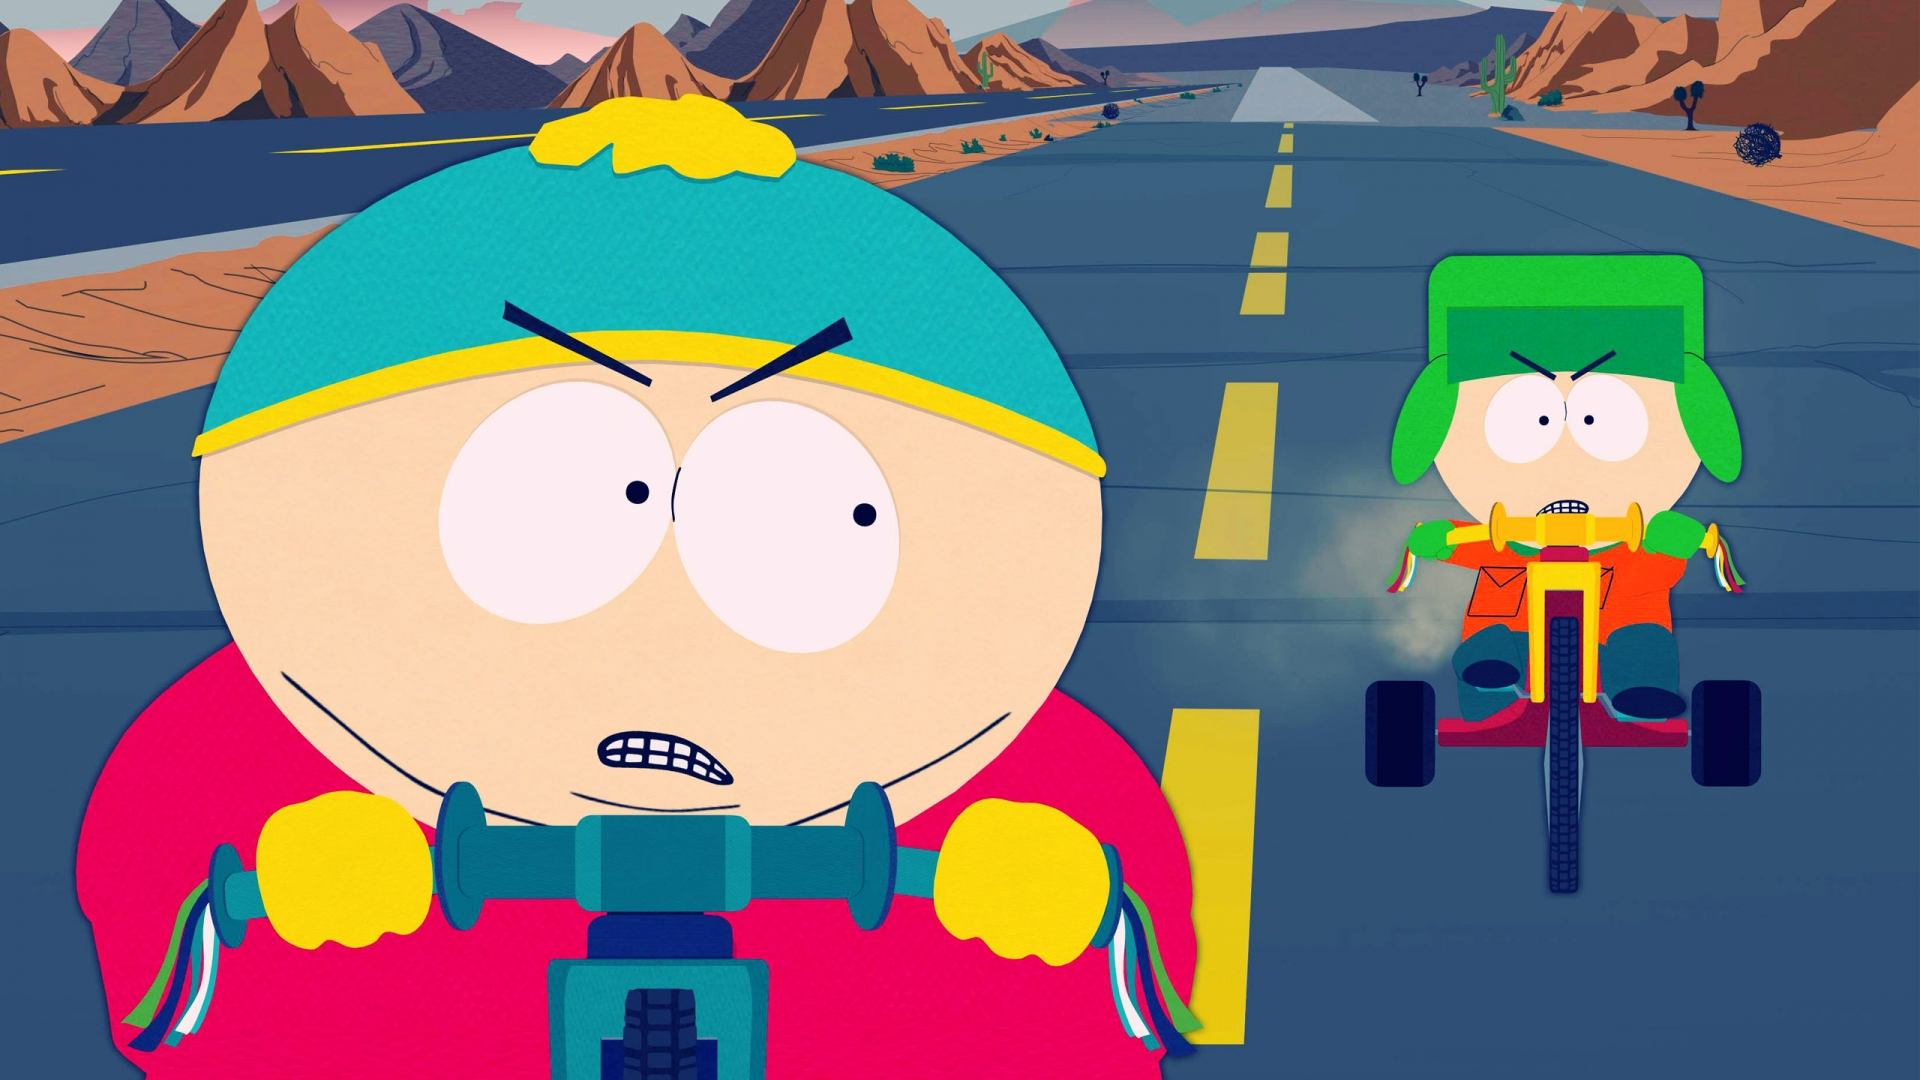 south park hd backgrounds, pictures, images